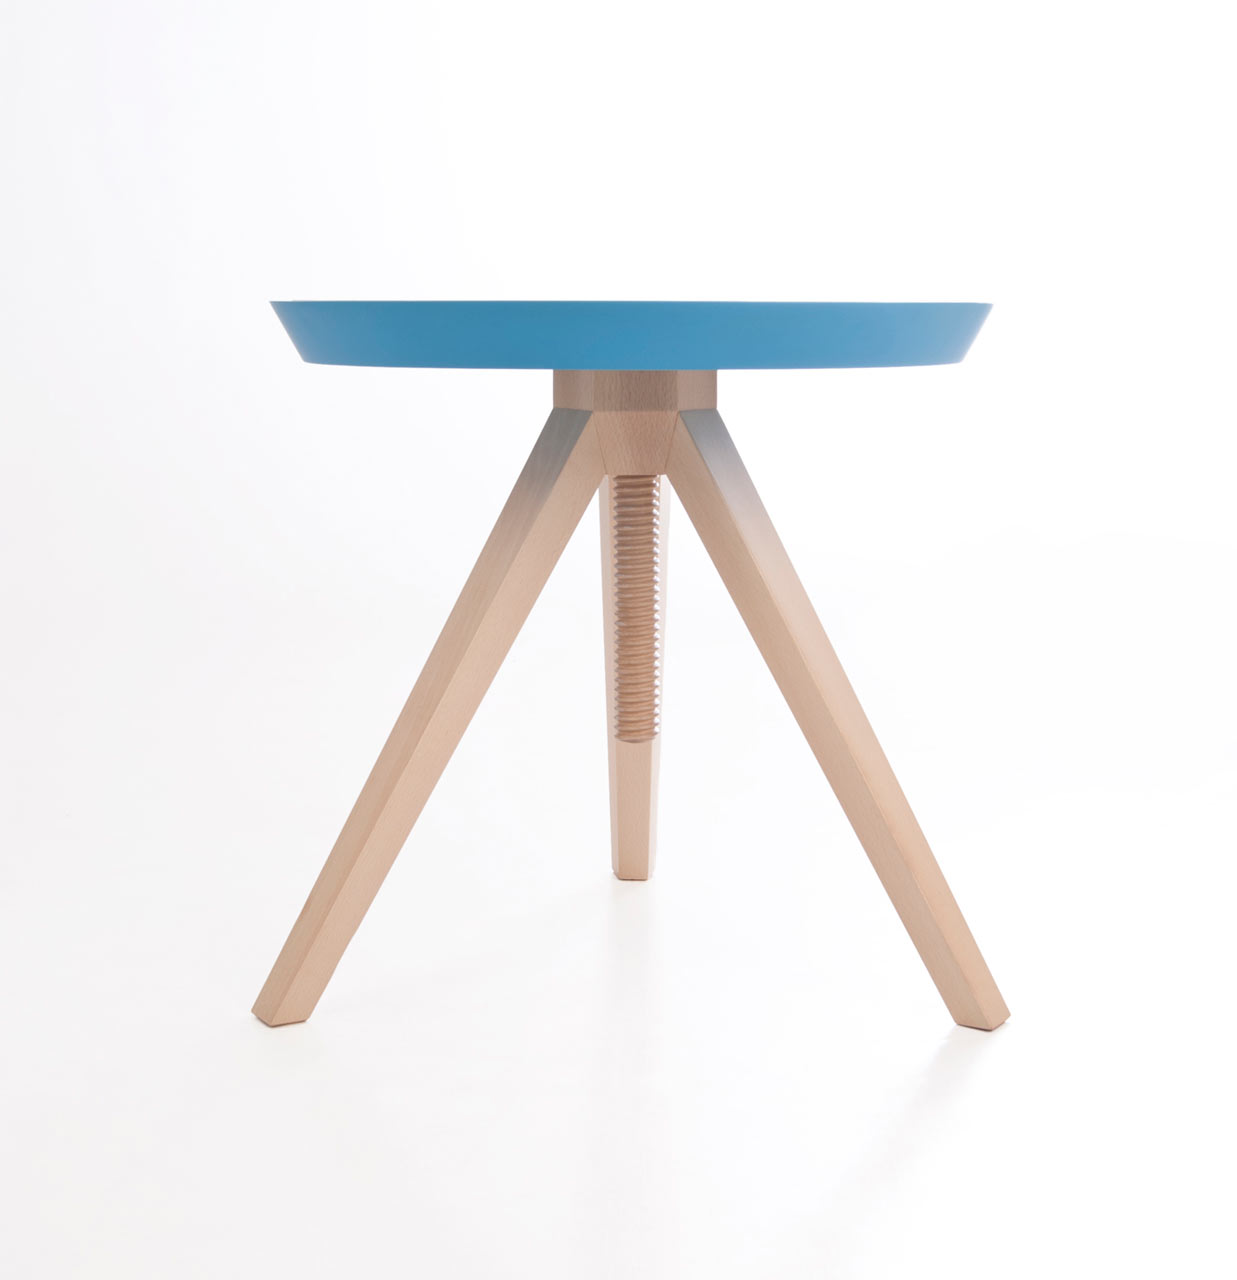 Cristian-Reyes-studio-Giros-Table-2